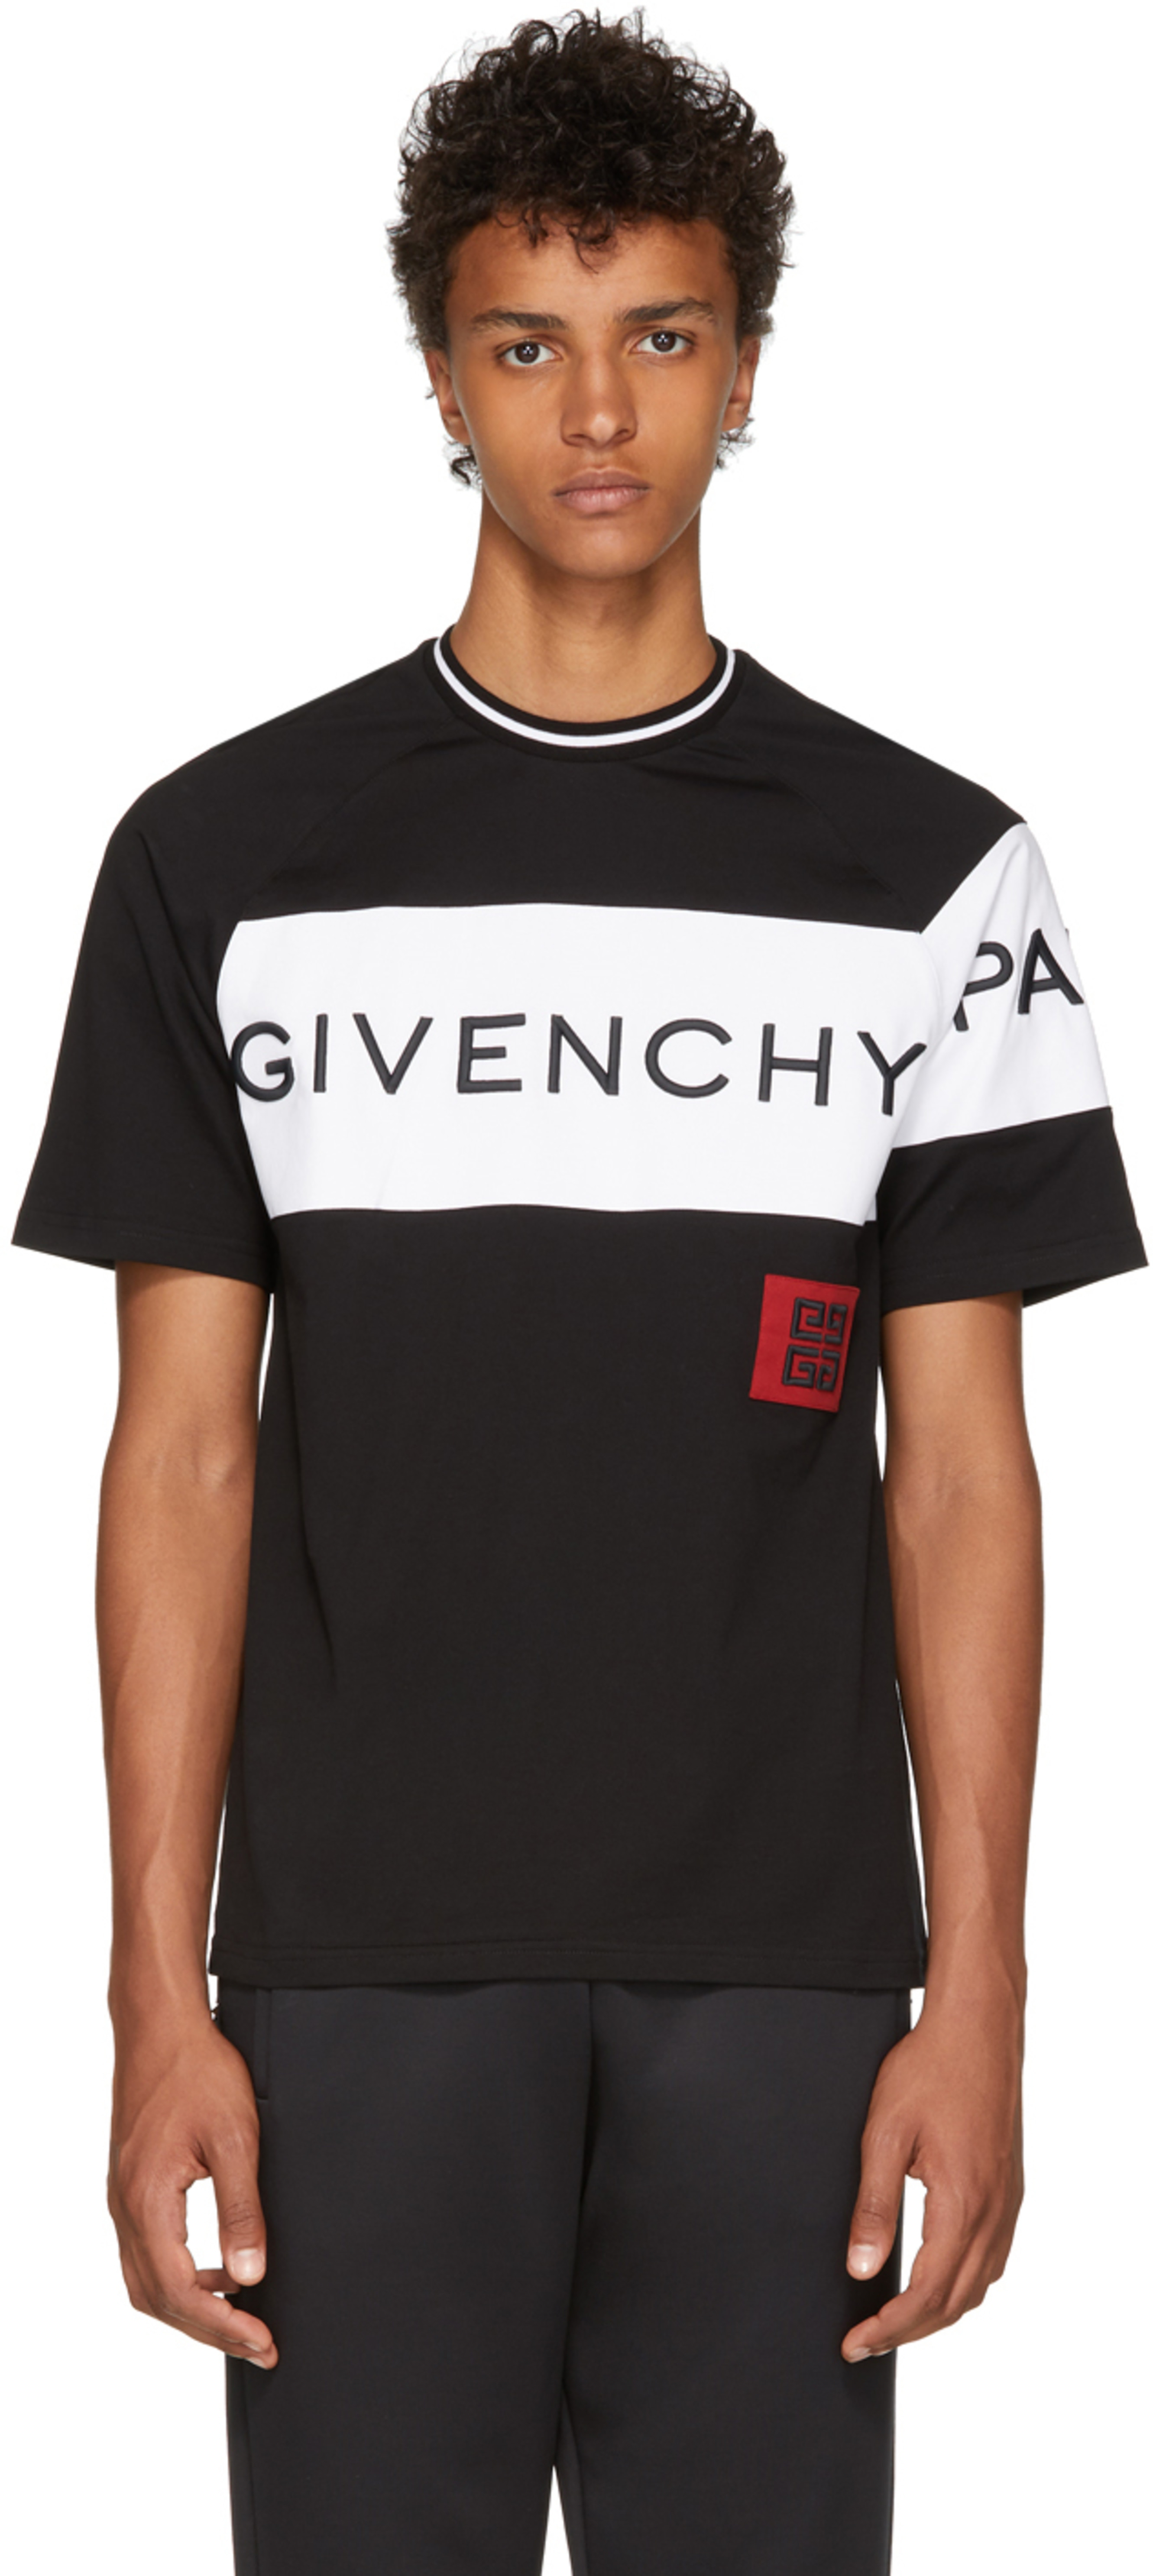 3d5416c1be2 Givenchy t-shirts for Men